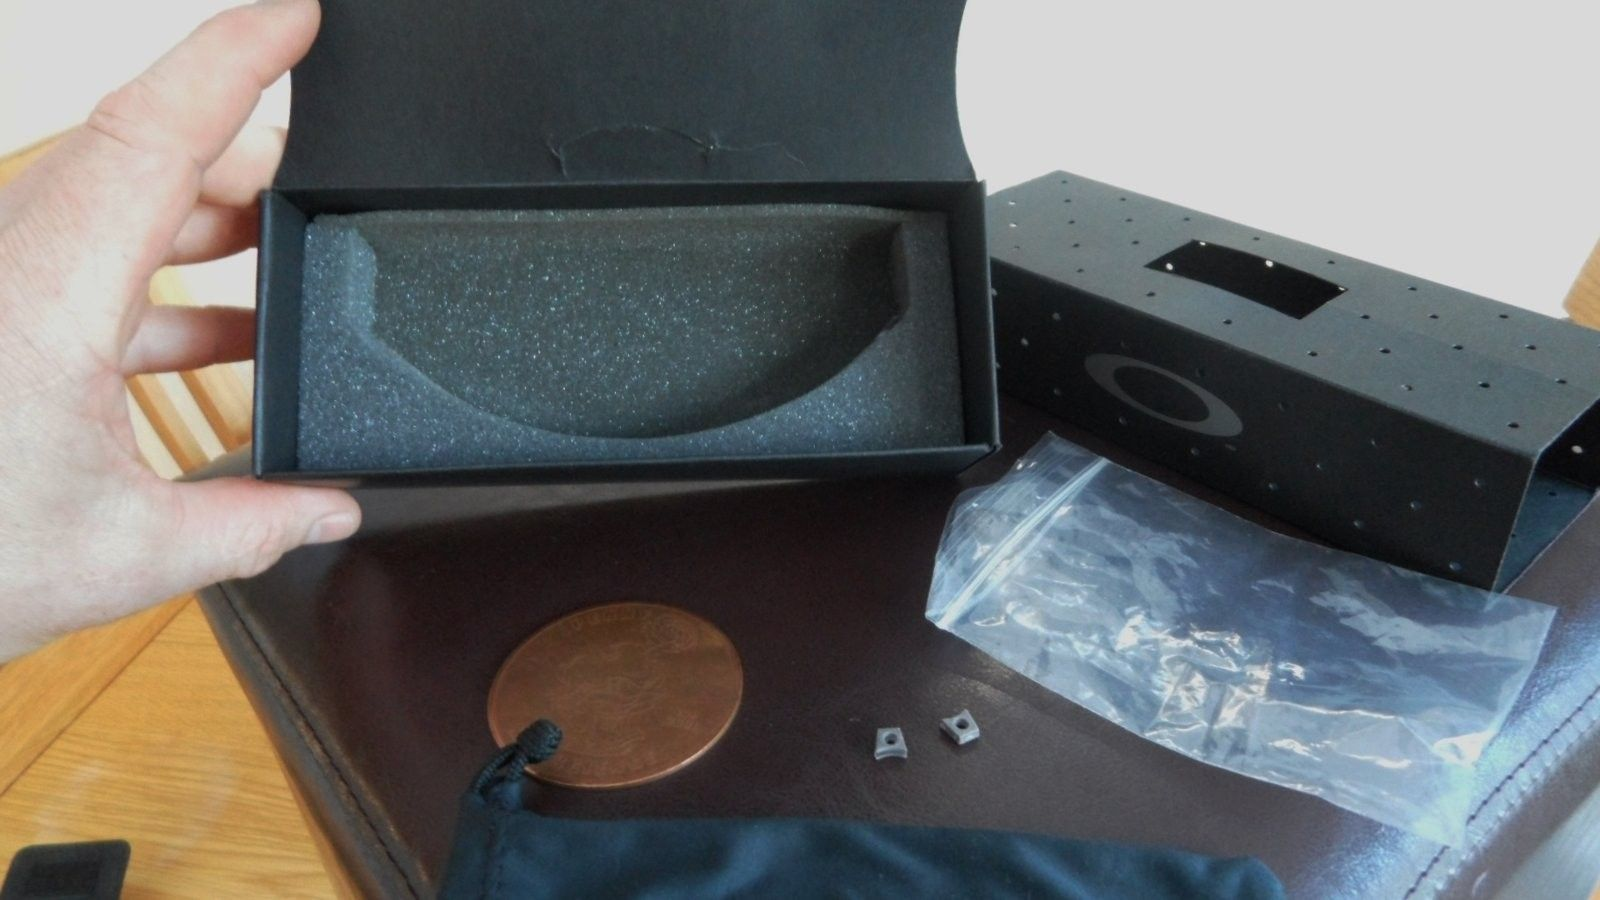 Penny Copper with VR28 lenses. Correctly Labelled Box but wrong serial. - SAM_0007.JPG